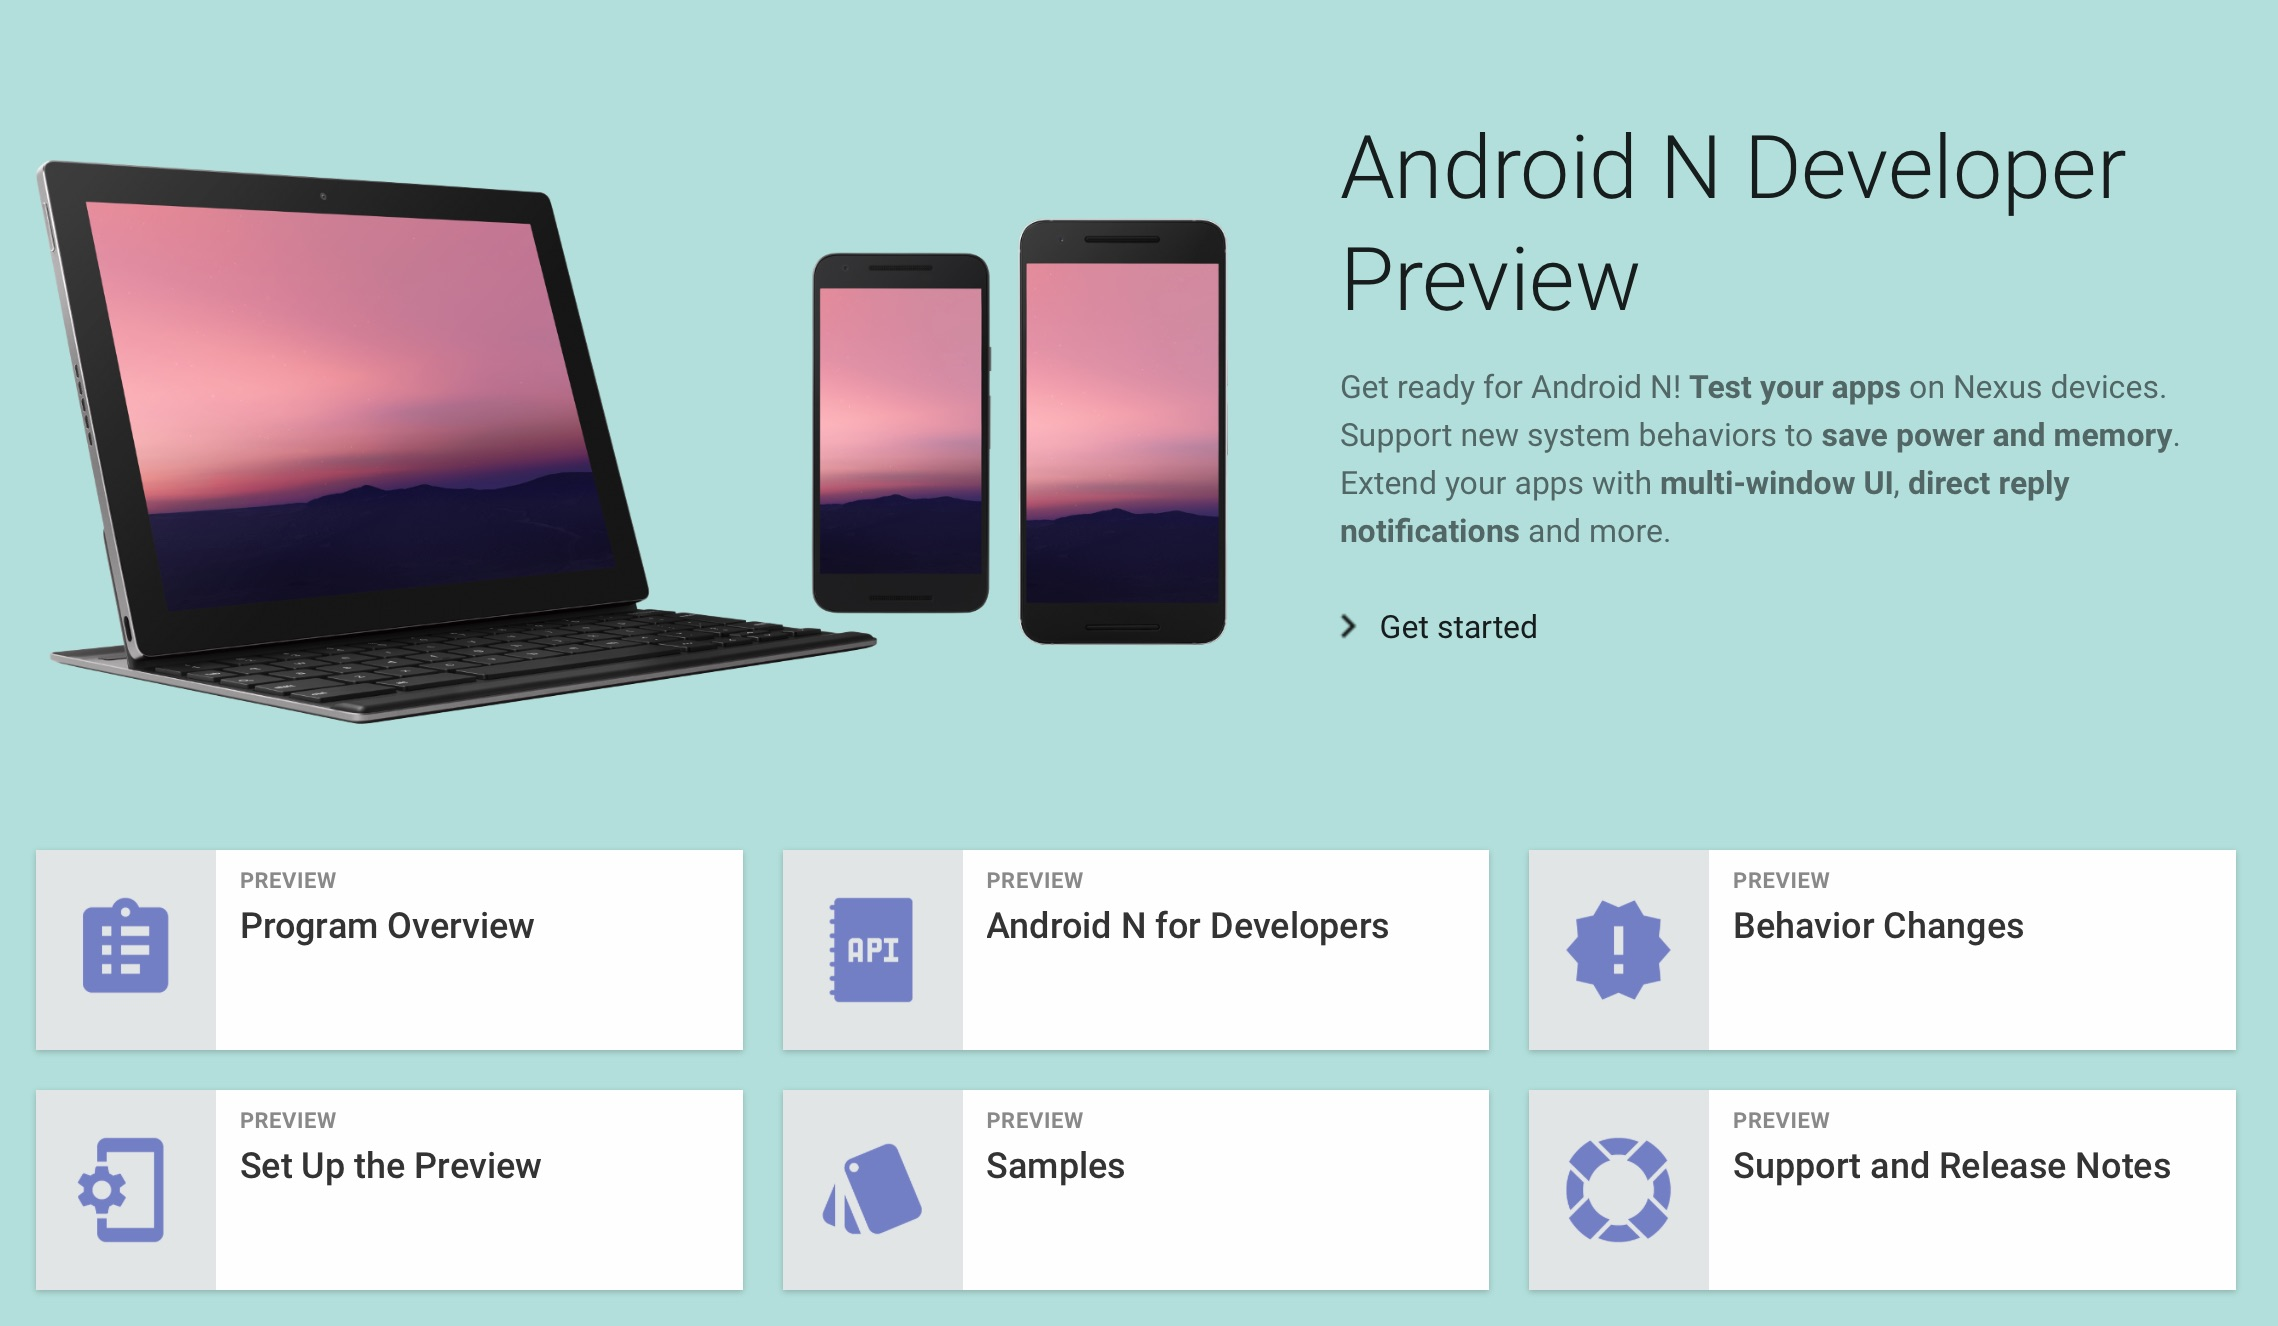 Android N Developer Preview Page